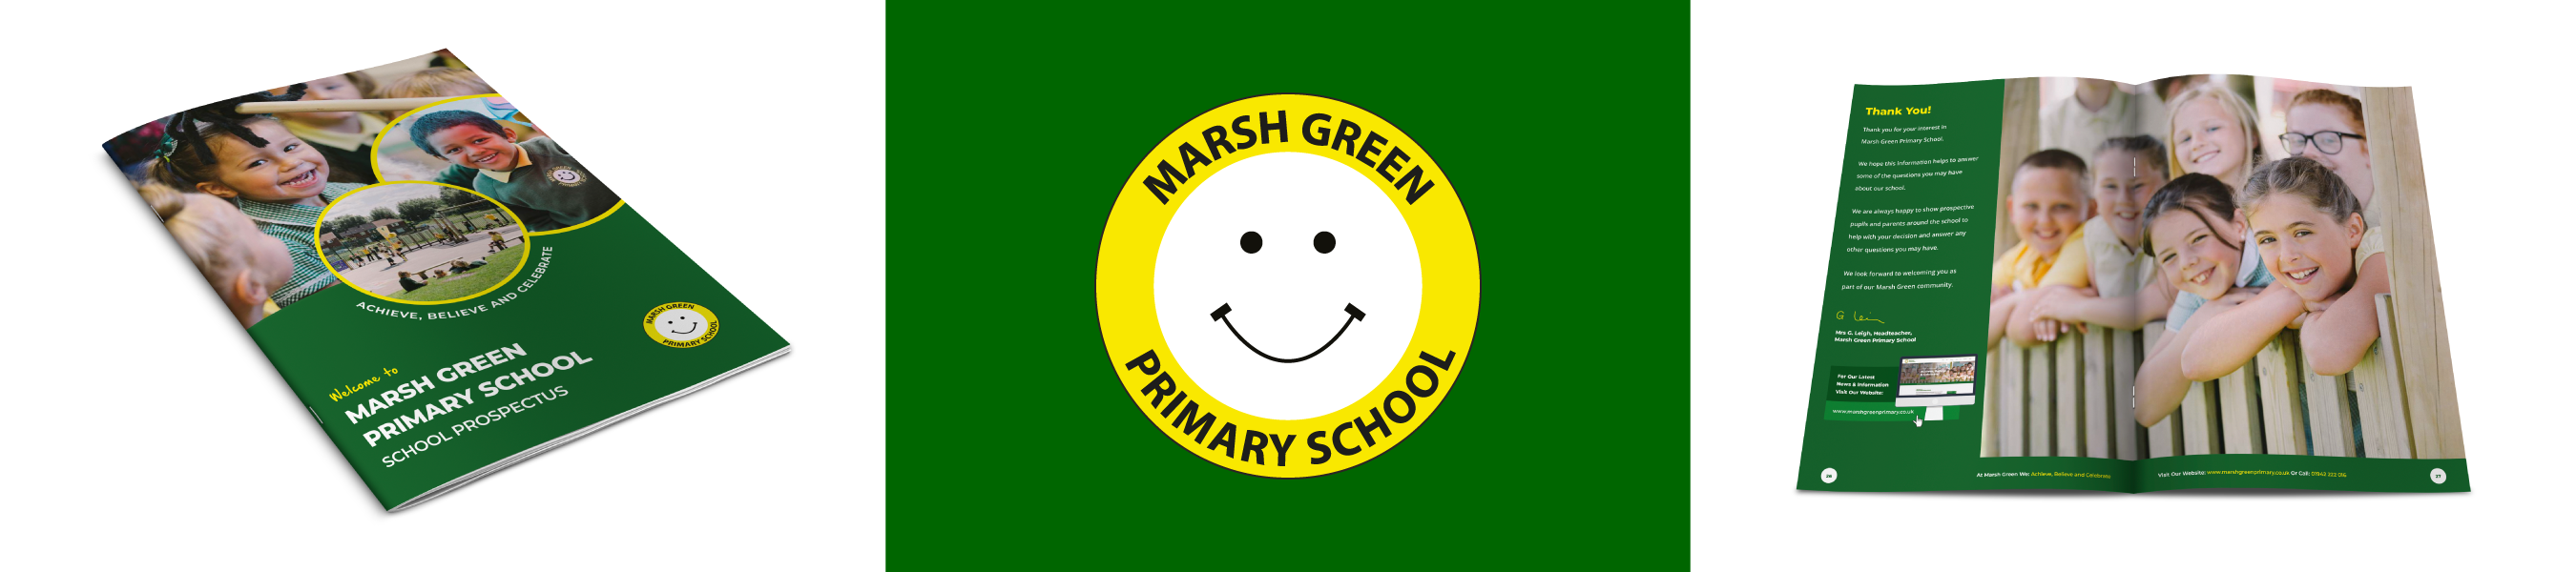 marsh_green_website_portfolio_image